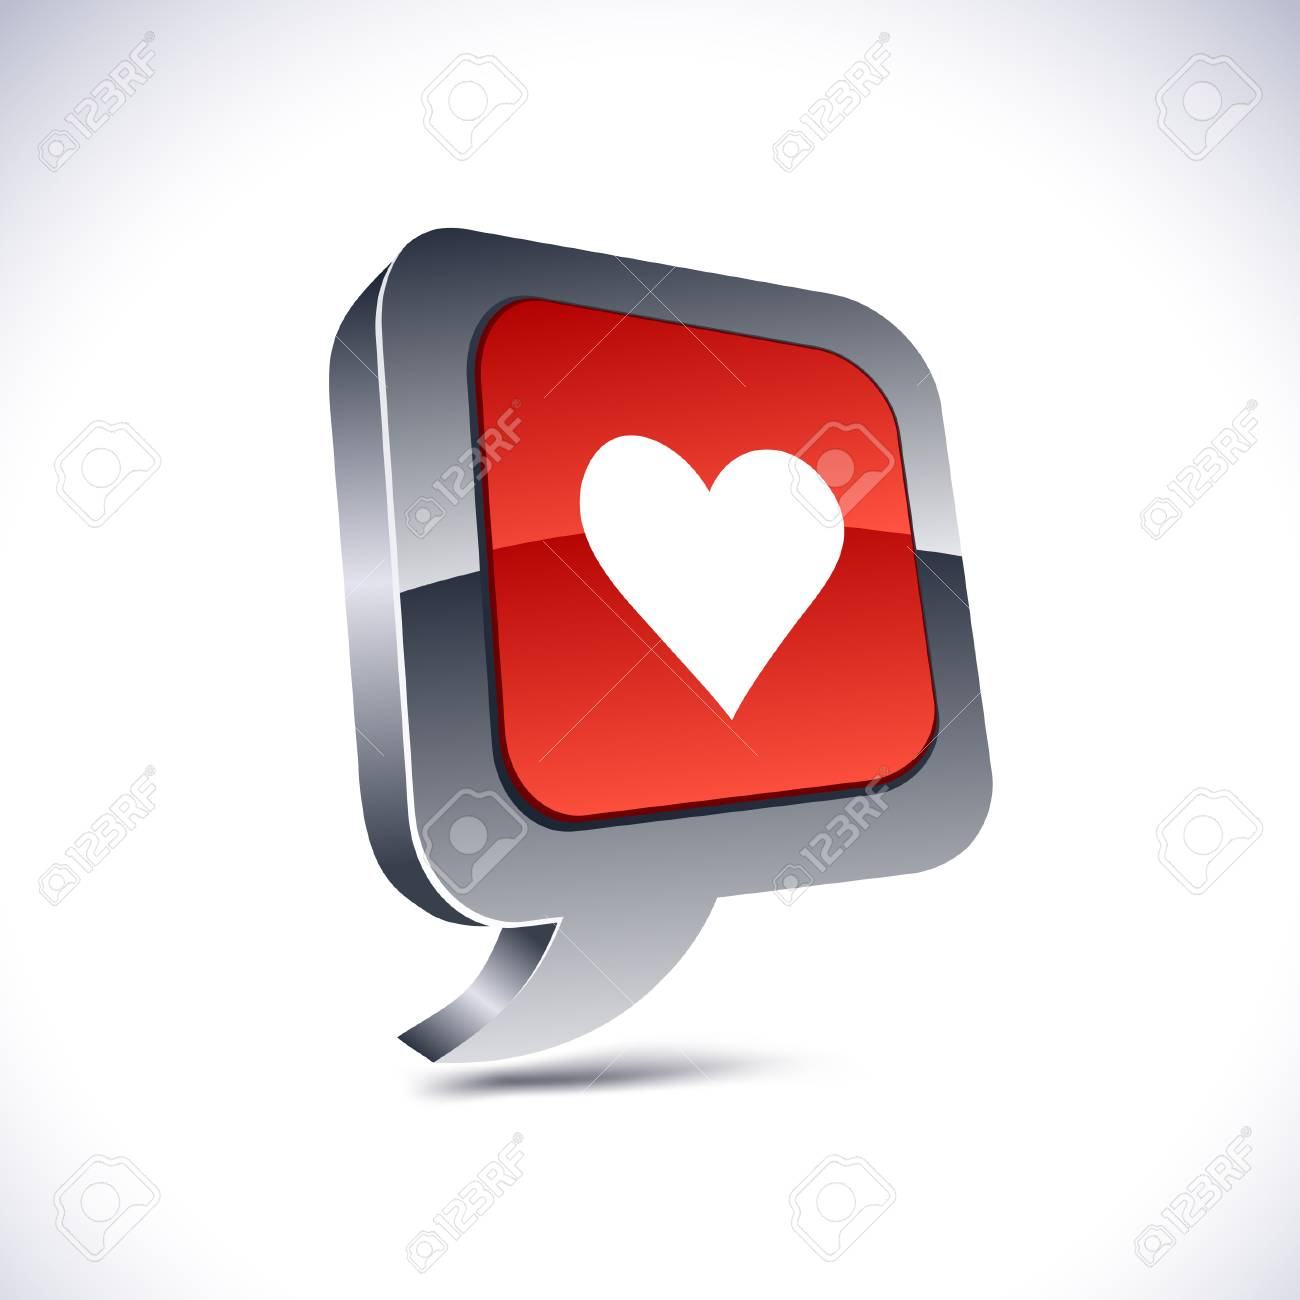 Love metallic 3d vibrant balloon icon. Stock Vector - 7293051